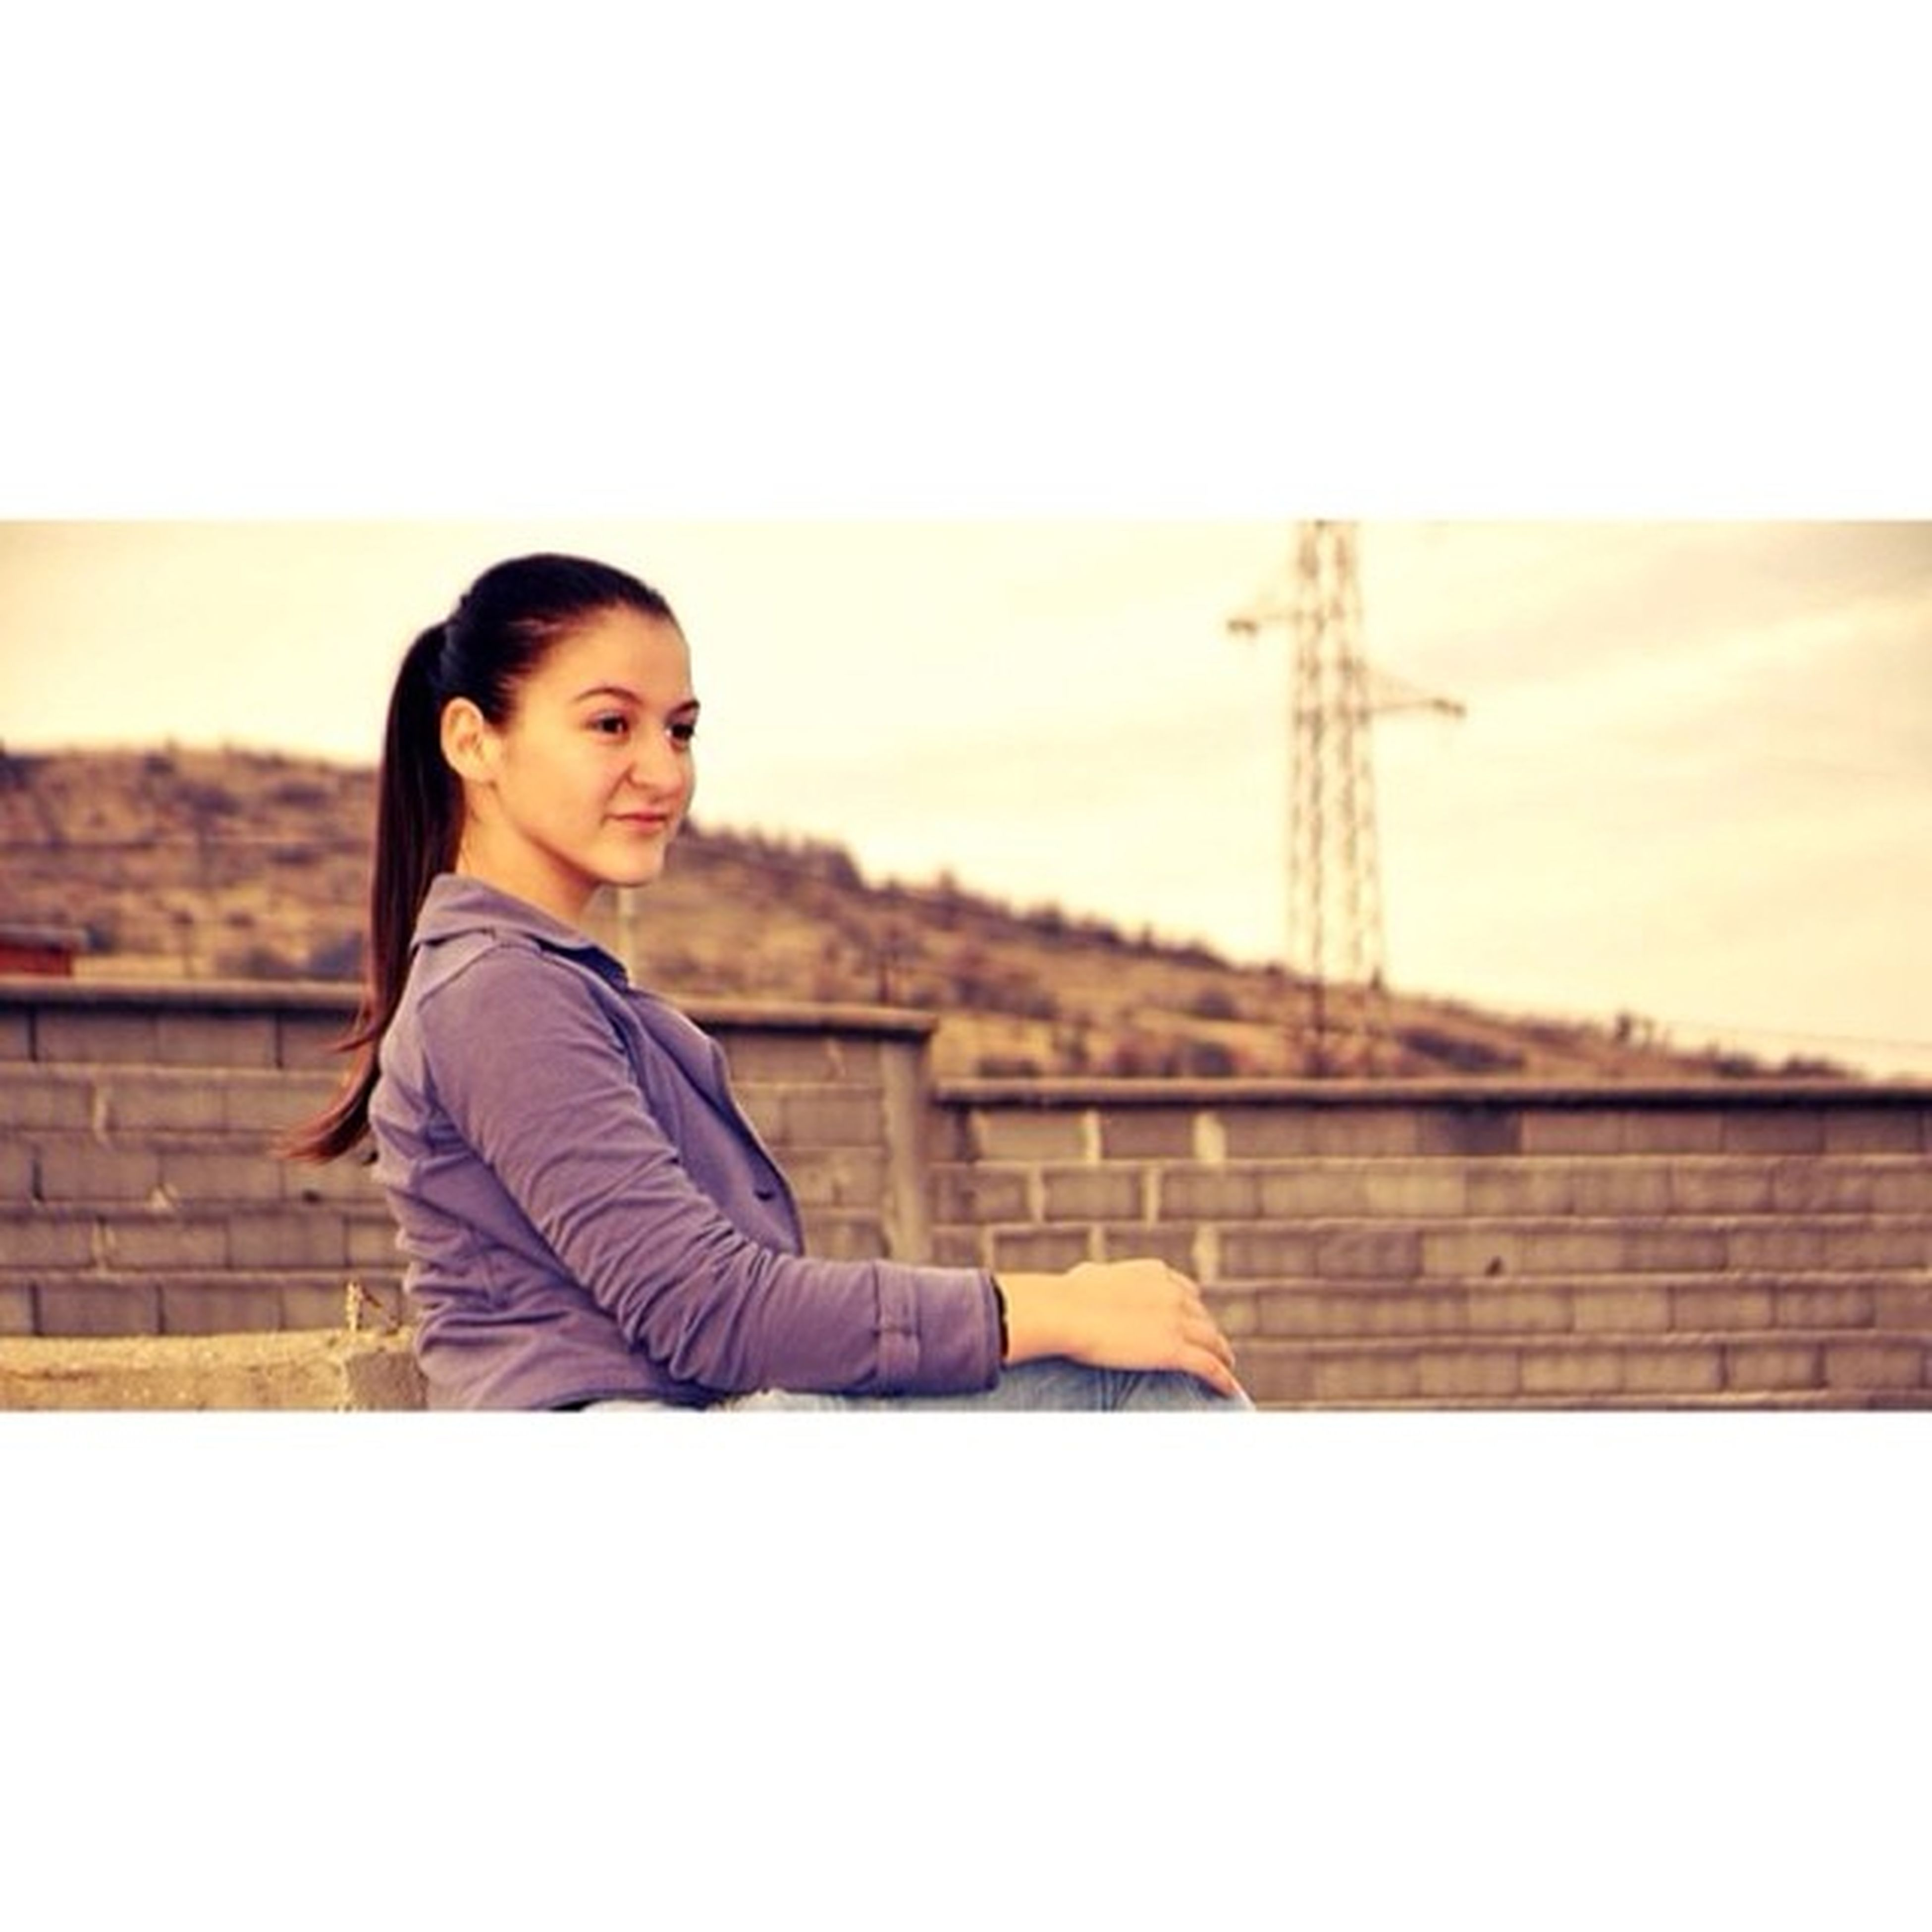 young adult, casual clothing, lifestyles, person, portrait, looking at camera, standing, leisure activity, young women, waist up, sitting, front view, three quarter length, railing, smiling, clear sky, copy space, full length